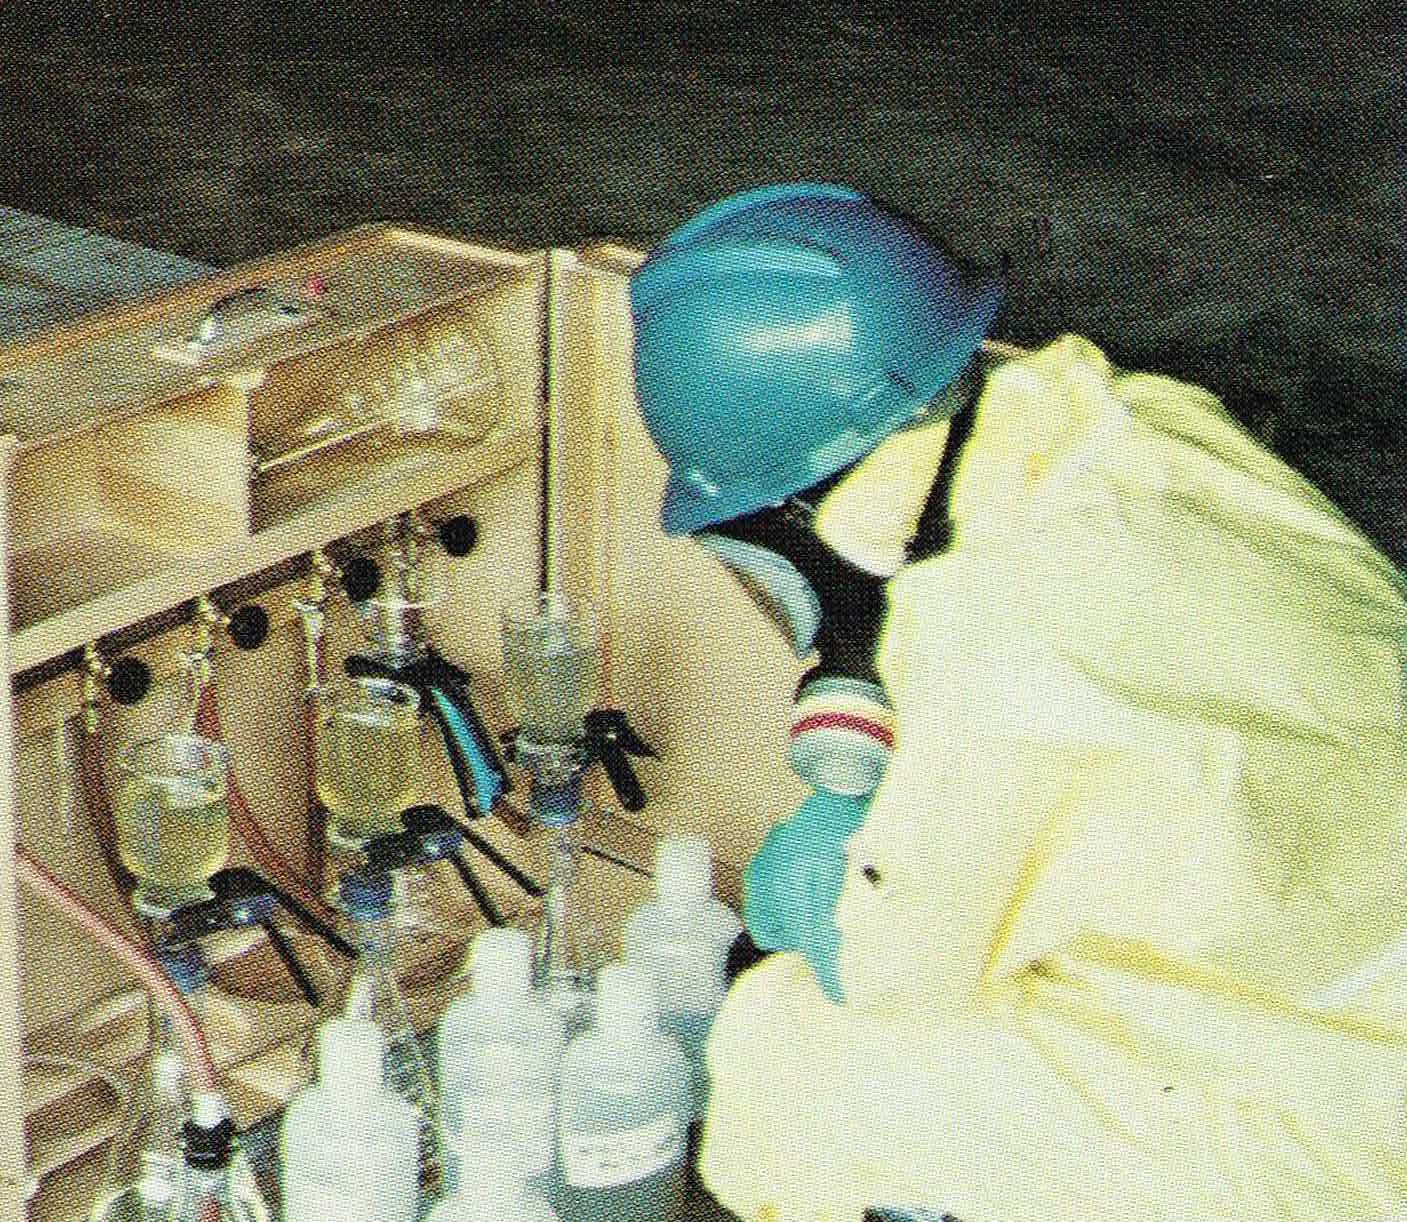 Deb in Level C gear filtering groundwater samples on a field job.